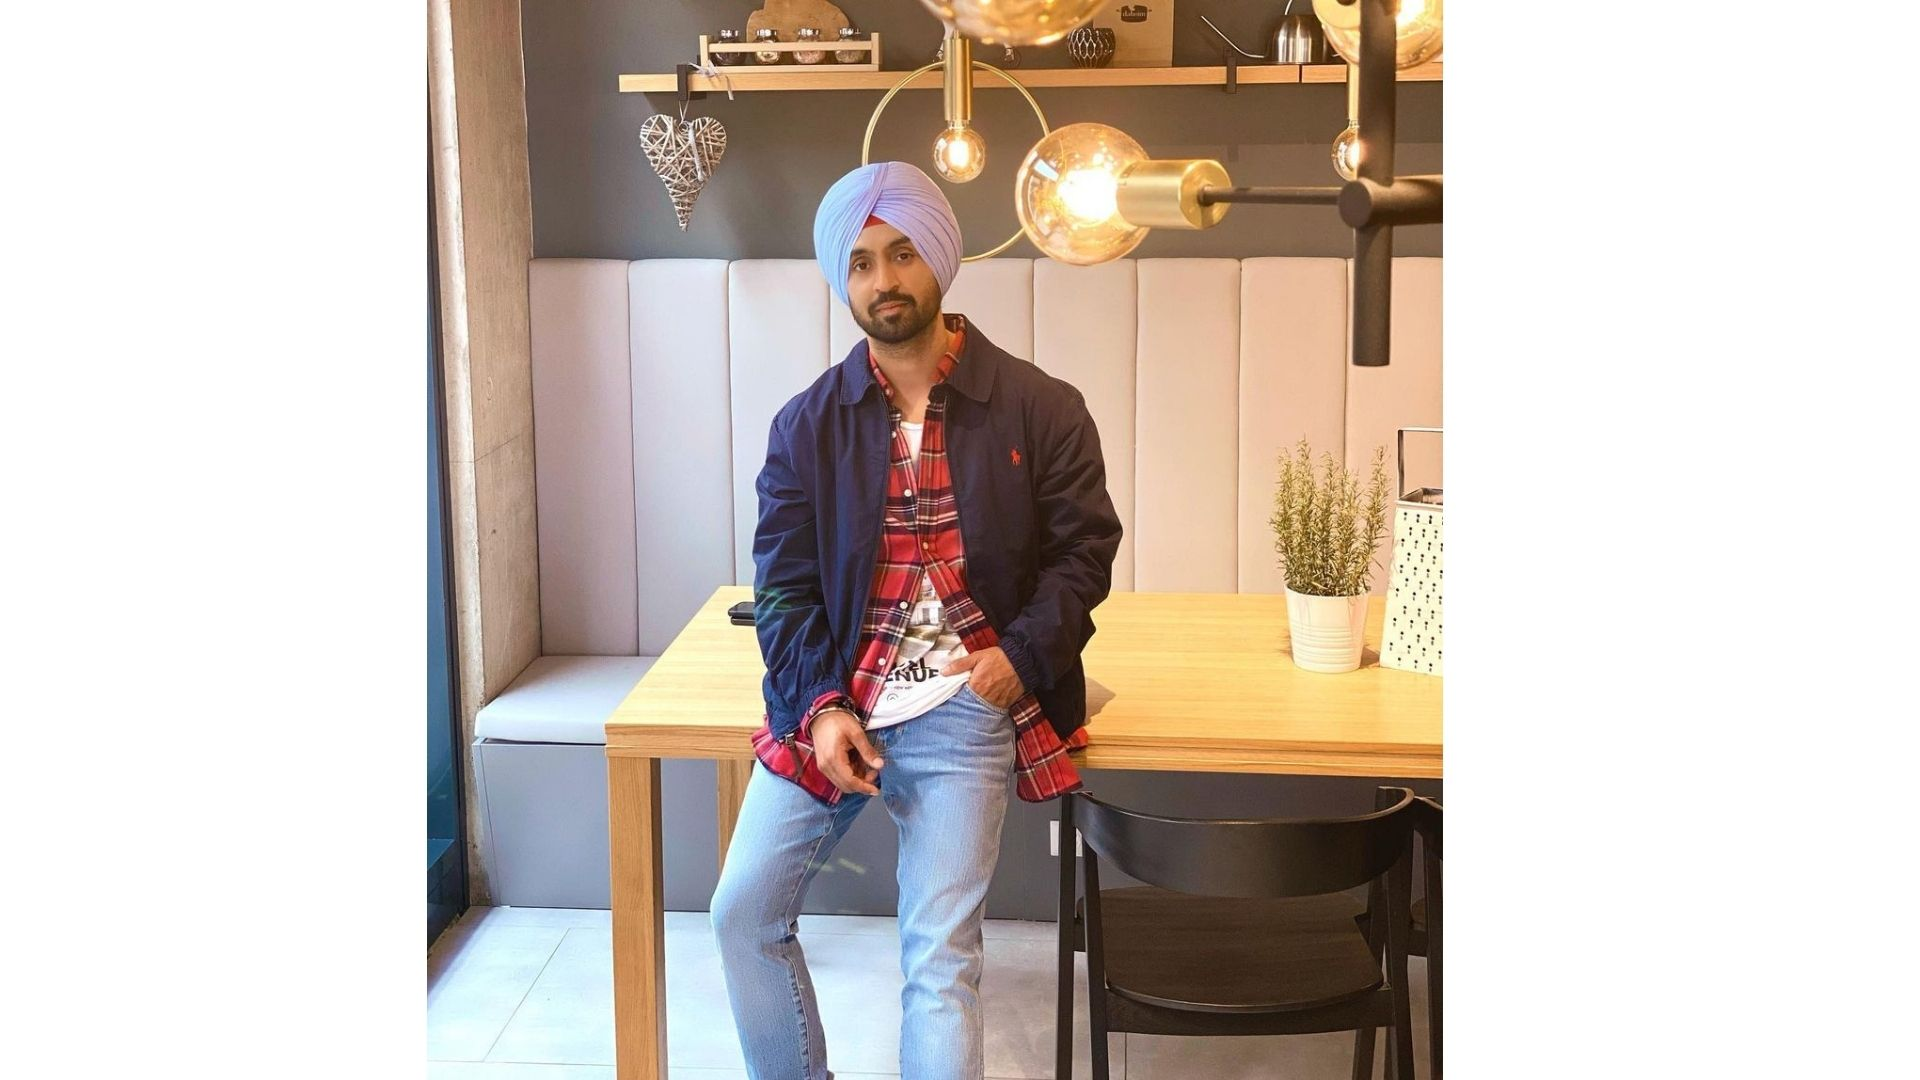 Honsla Rakh Sher Song Out: Diljit Dosanjh Grooves To The Part Anthem Of The Year